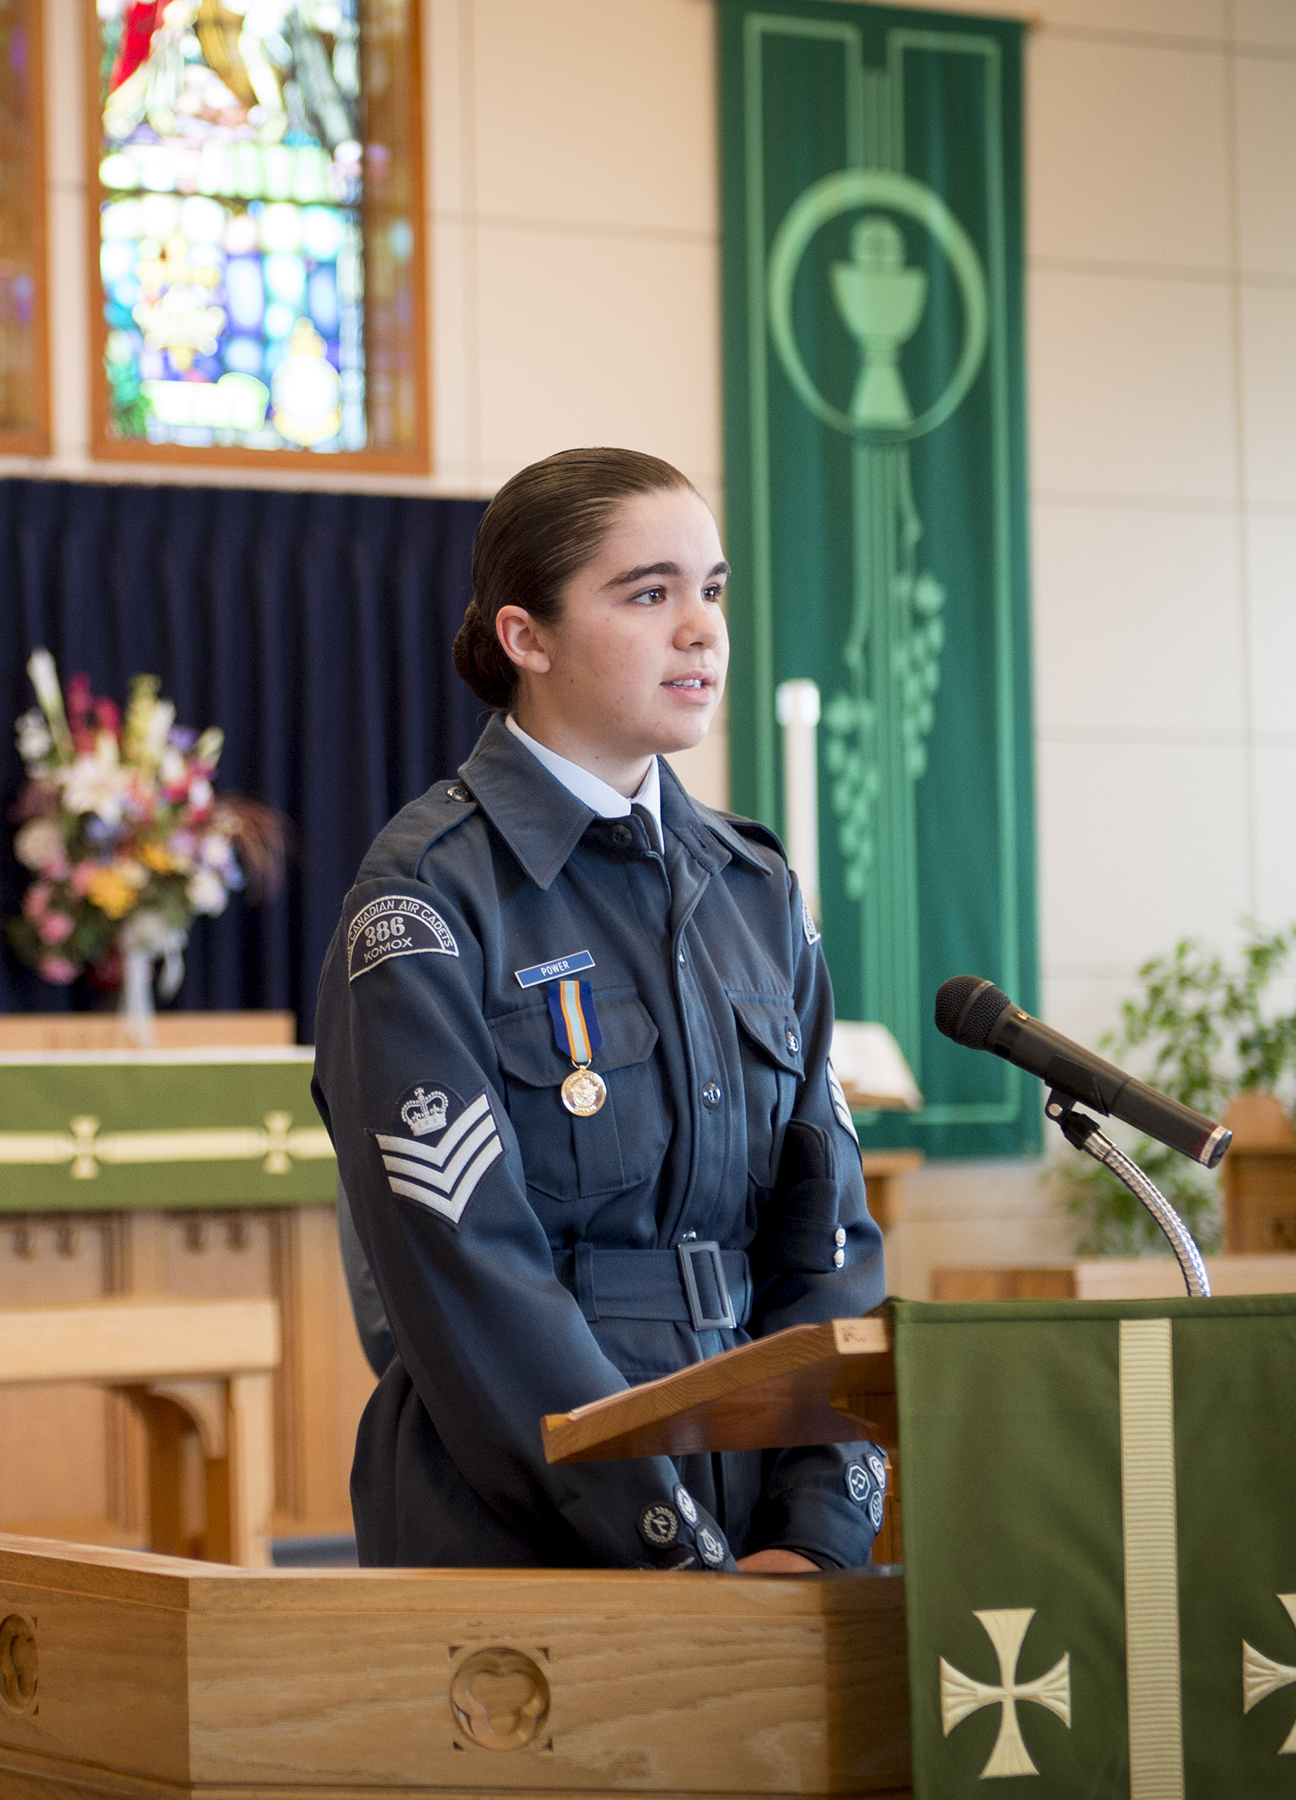 In St. Michael and All Angels Chapel in Comox, British Columbia, Master Corporal Power, from 386 Komox Royal Canadian Air Cadet Squadron, addresses the congregation during the September 17, 2017, Battle of Britain service. PHOTO: Master Seaman Roxanne Wood, CX04-2017-0355-009